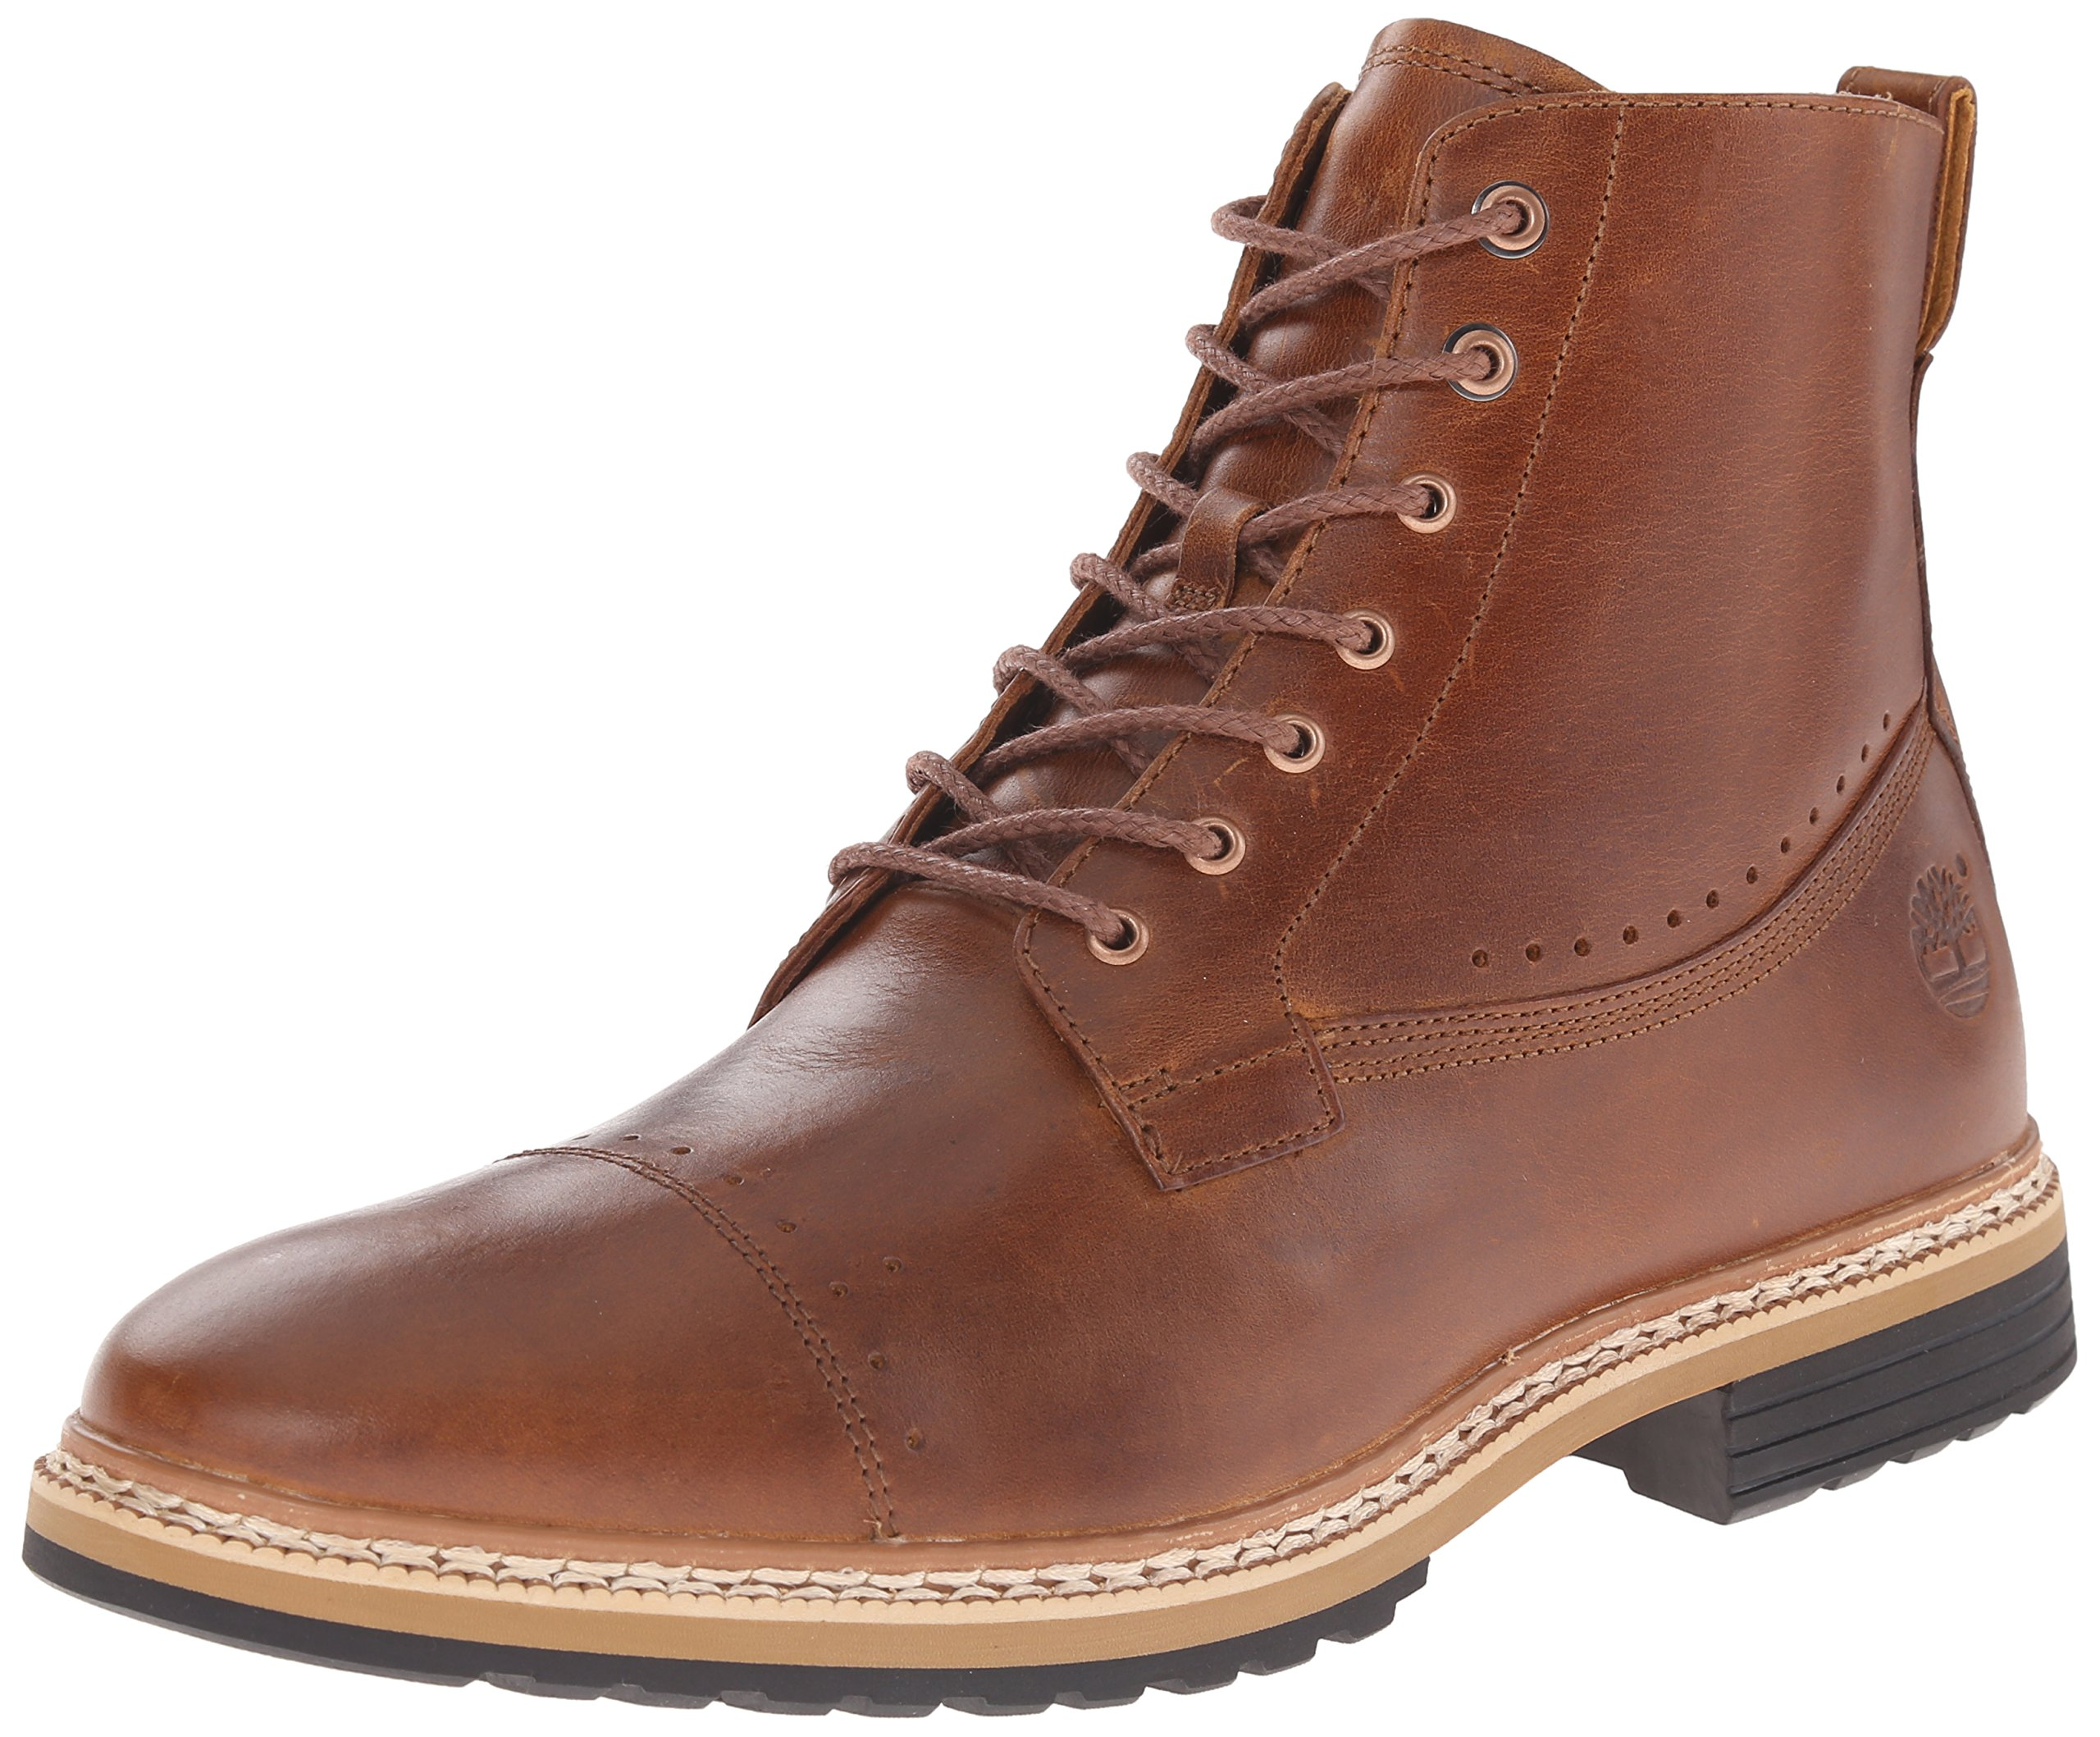 Timberland Men's West Haven 6 Inch Side-Zip Boot, Tan Full Grain, 11.5 M US by Timberland